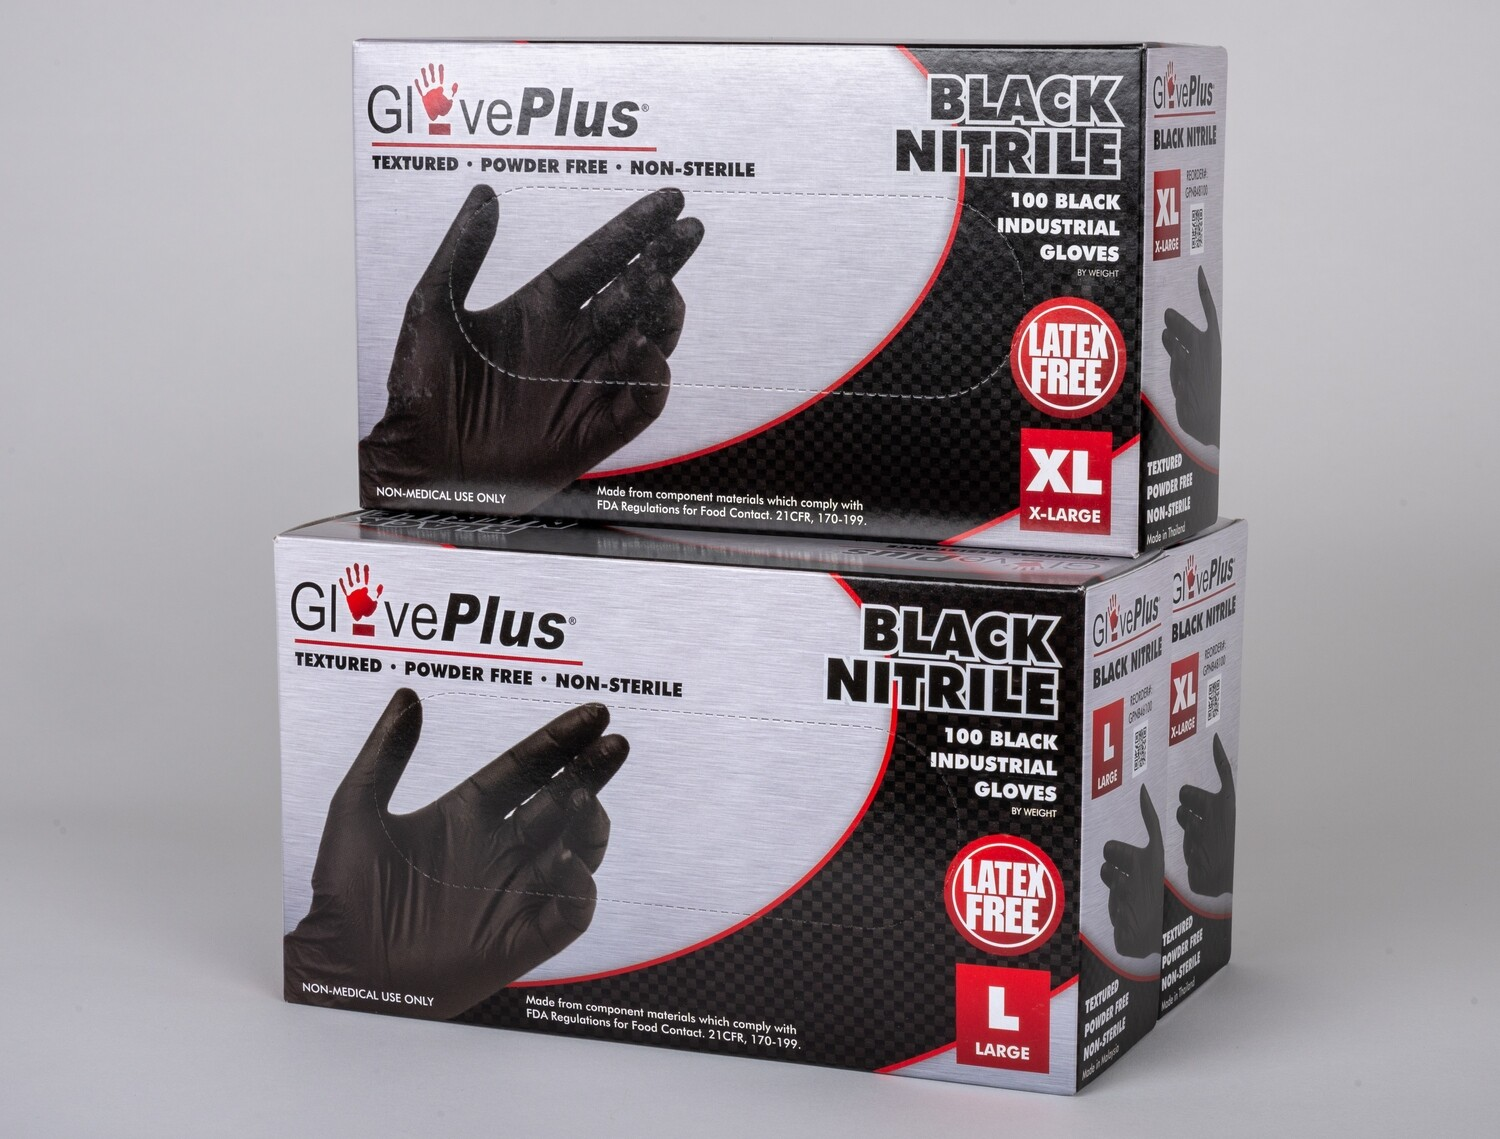 Black Nitrile Gloves, Box of 50 Pair